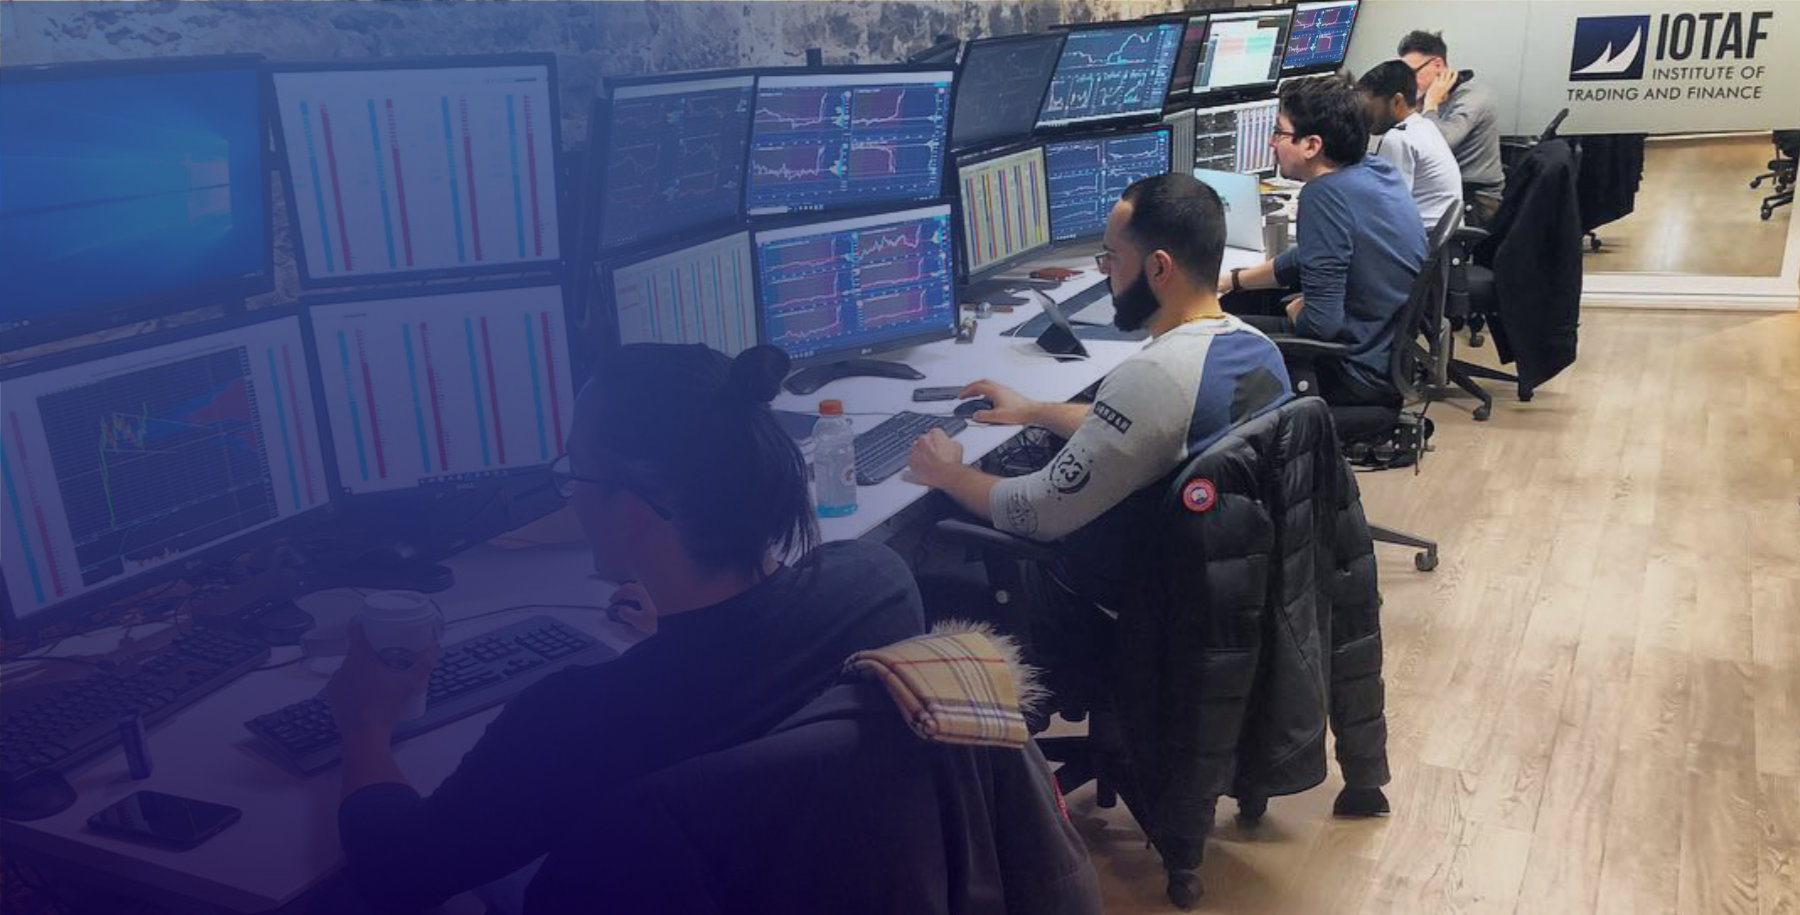 IOTAF trading floor with traders